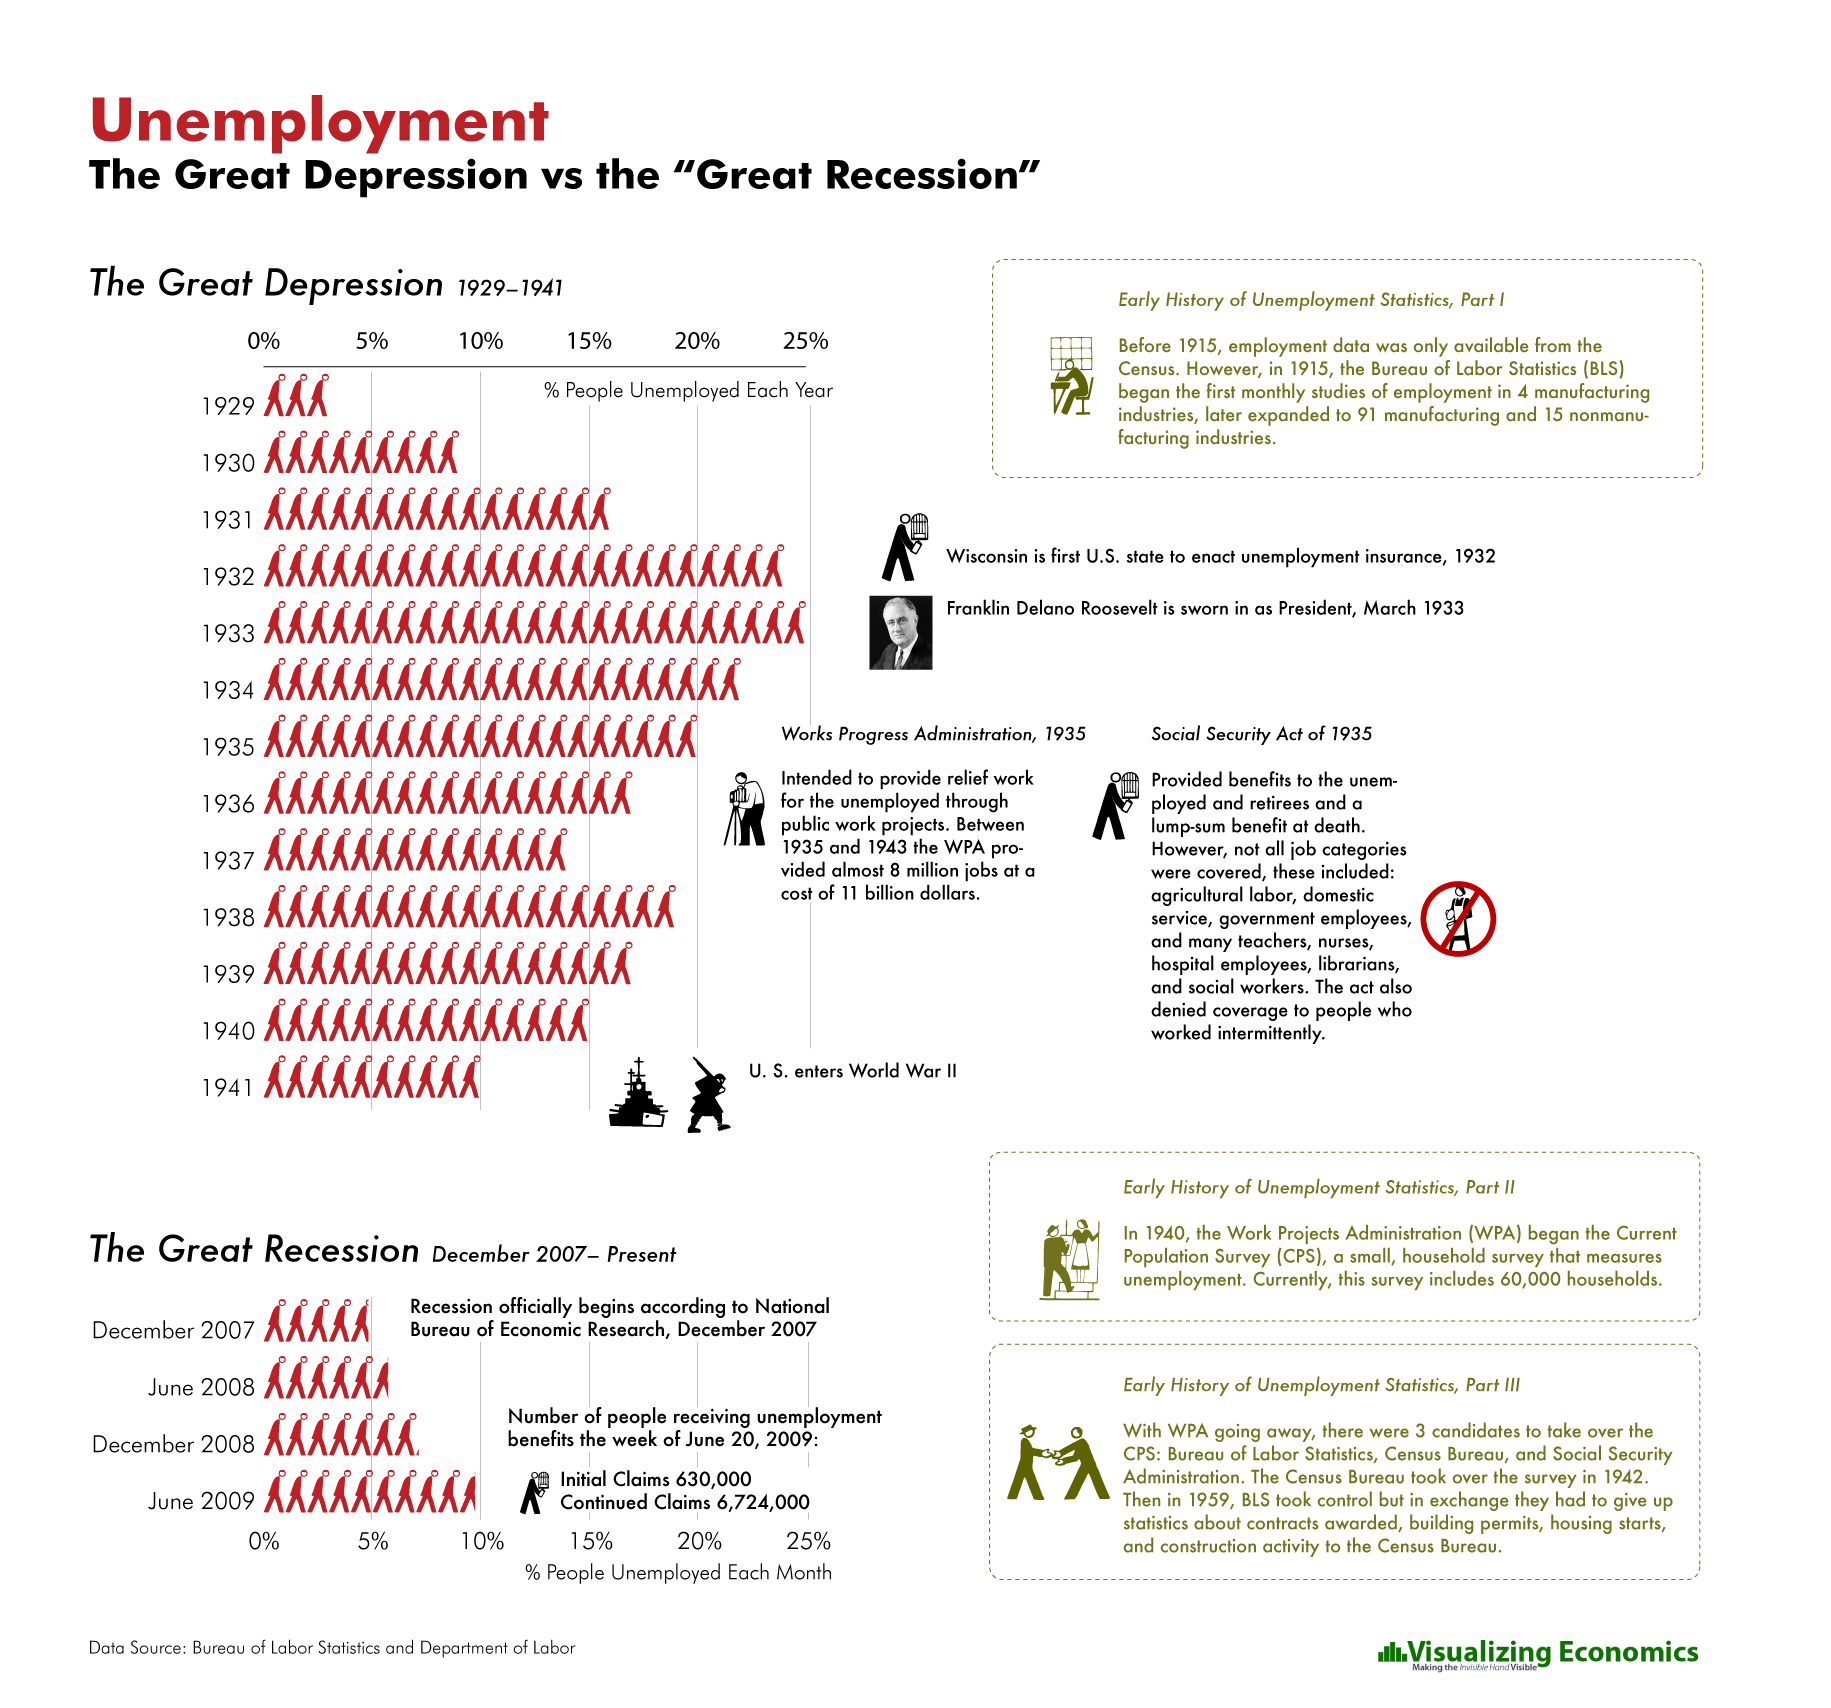 Unemployment In The Great Depression Vs The Great Recession Infographic